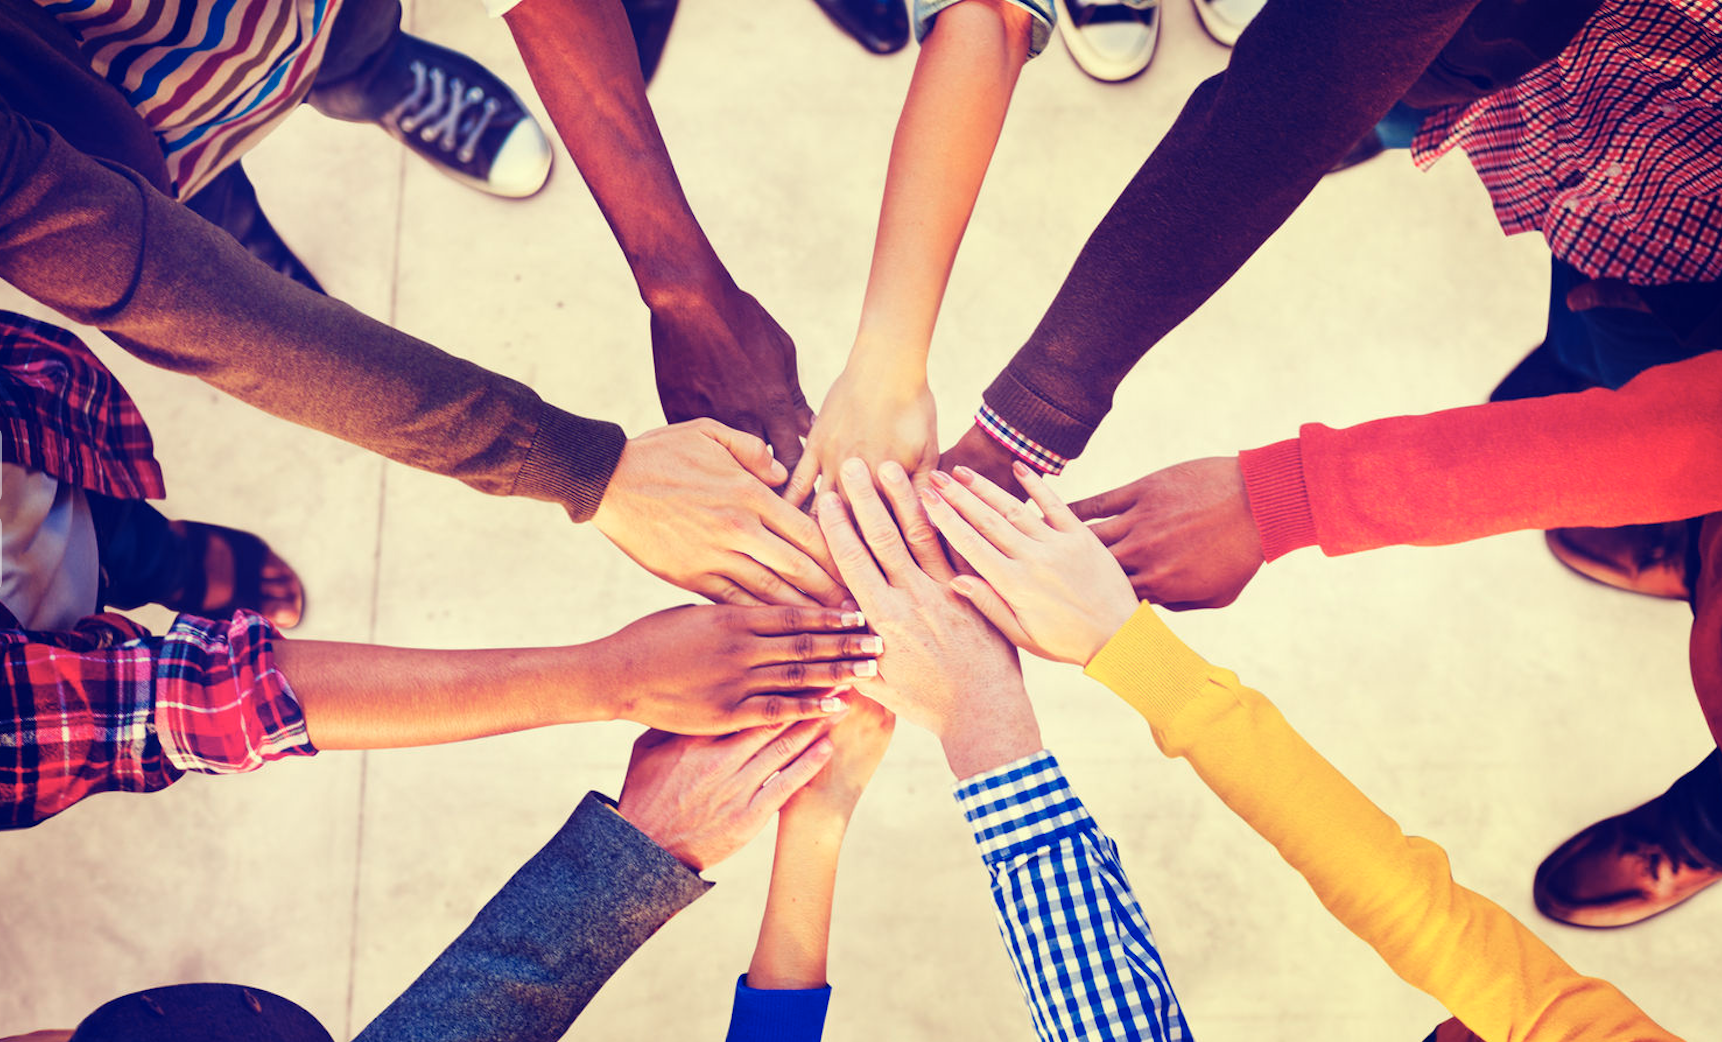 Diverse group of people joining hands